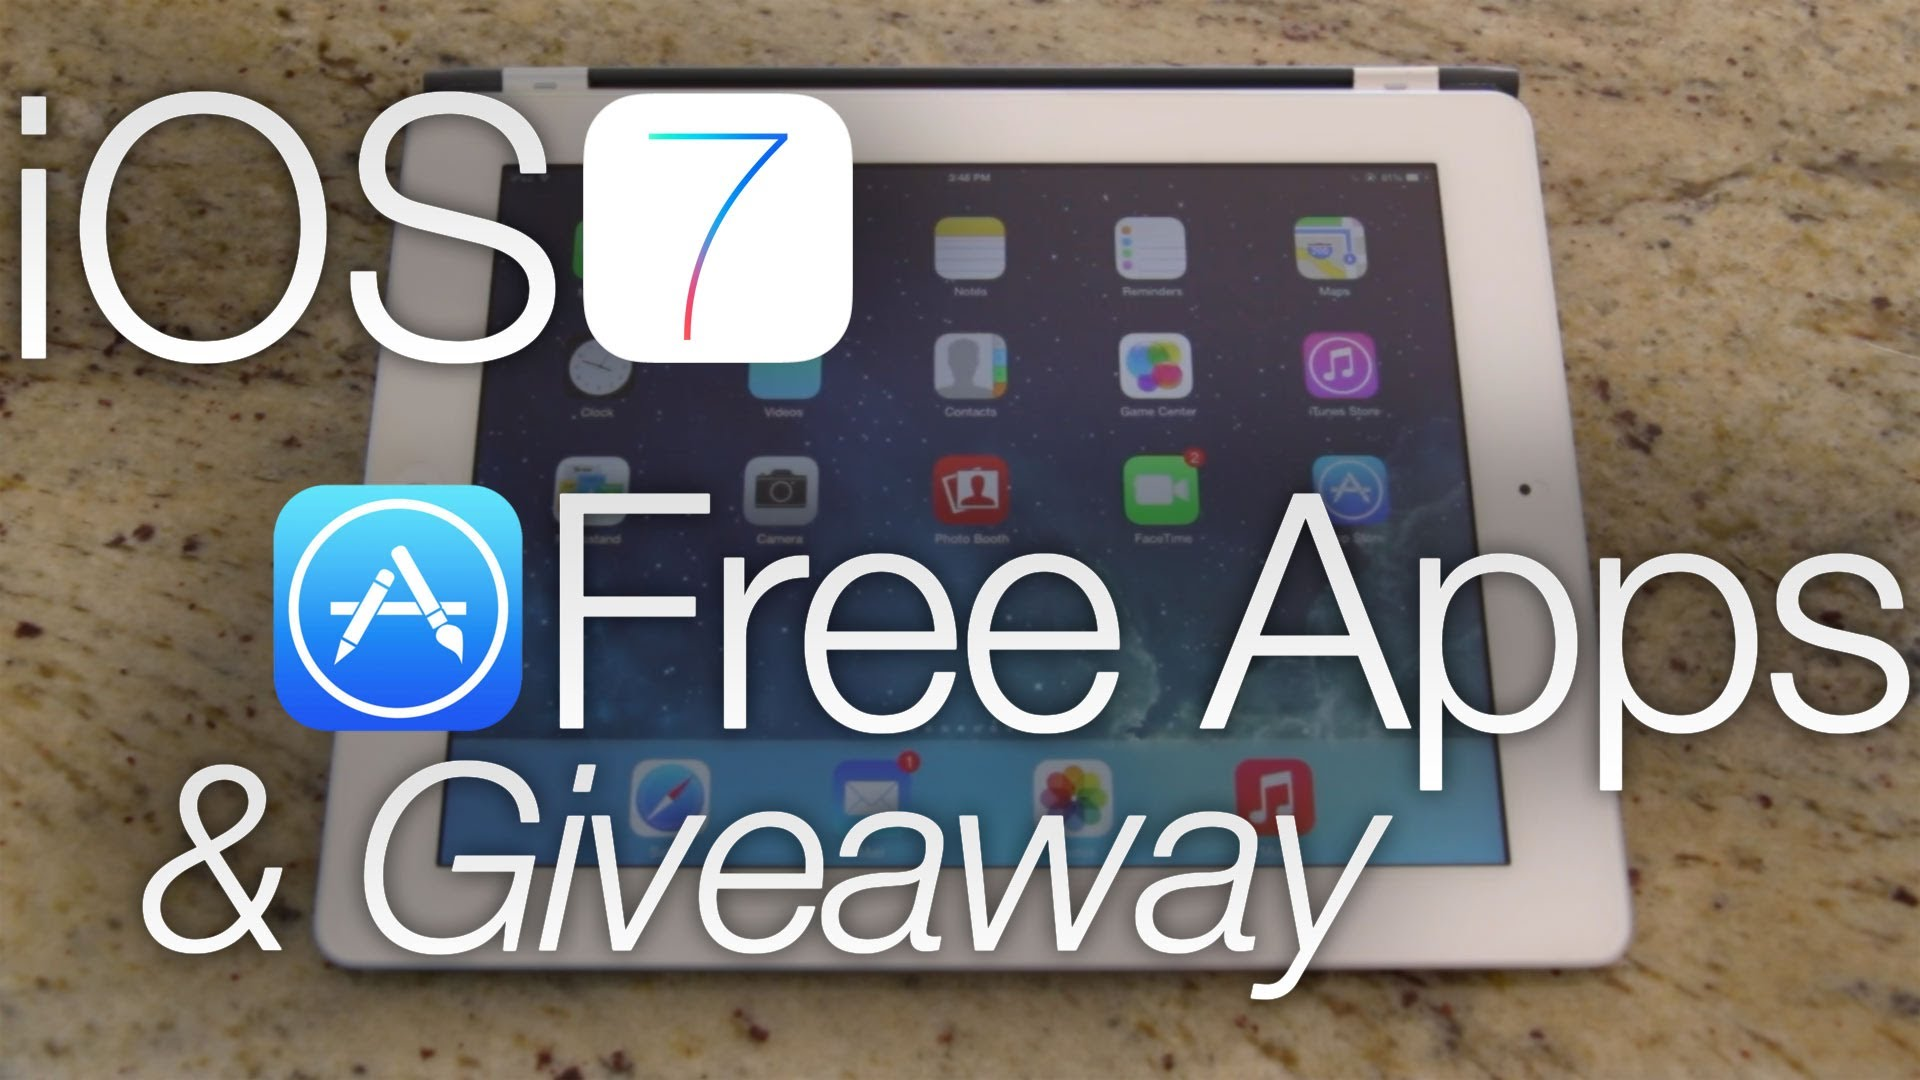 Get paid apps for free without Jailbreak (for iOS 7) - 4mobiles net